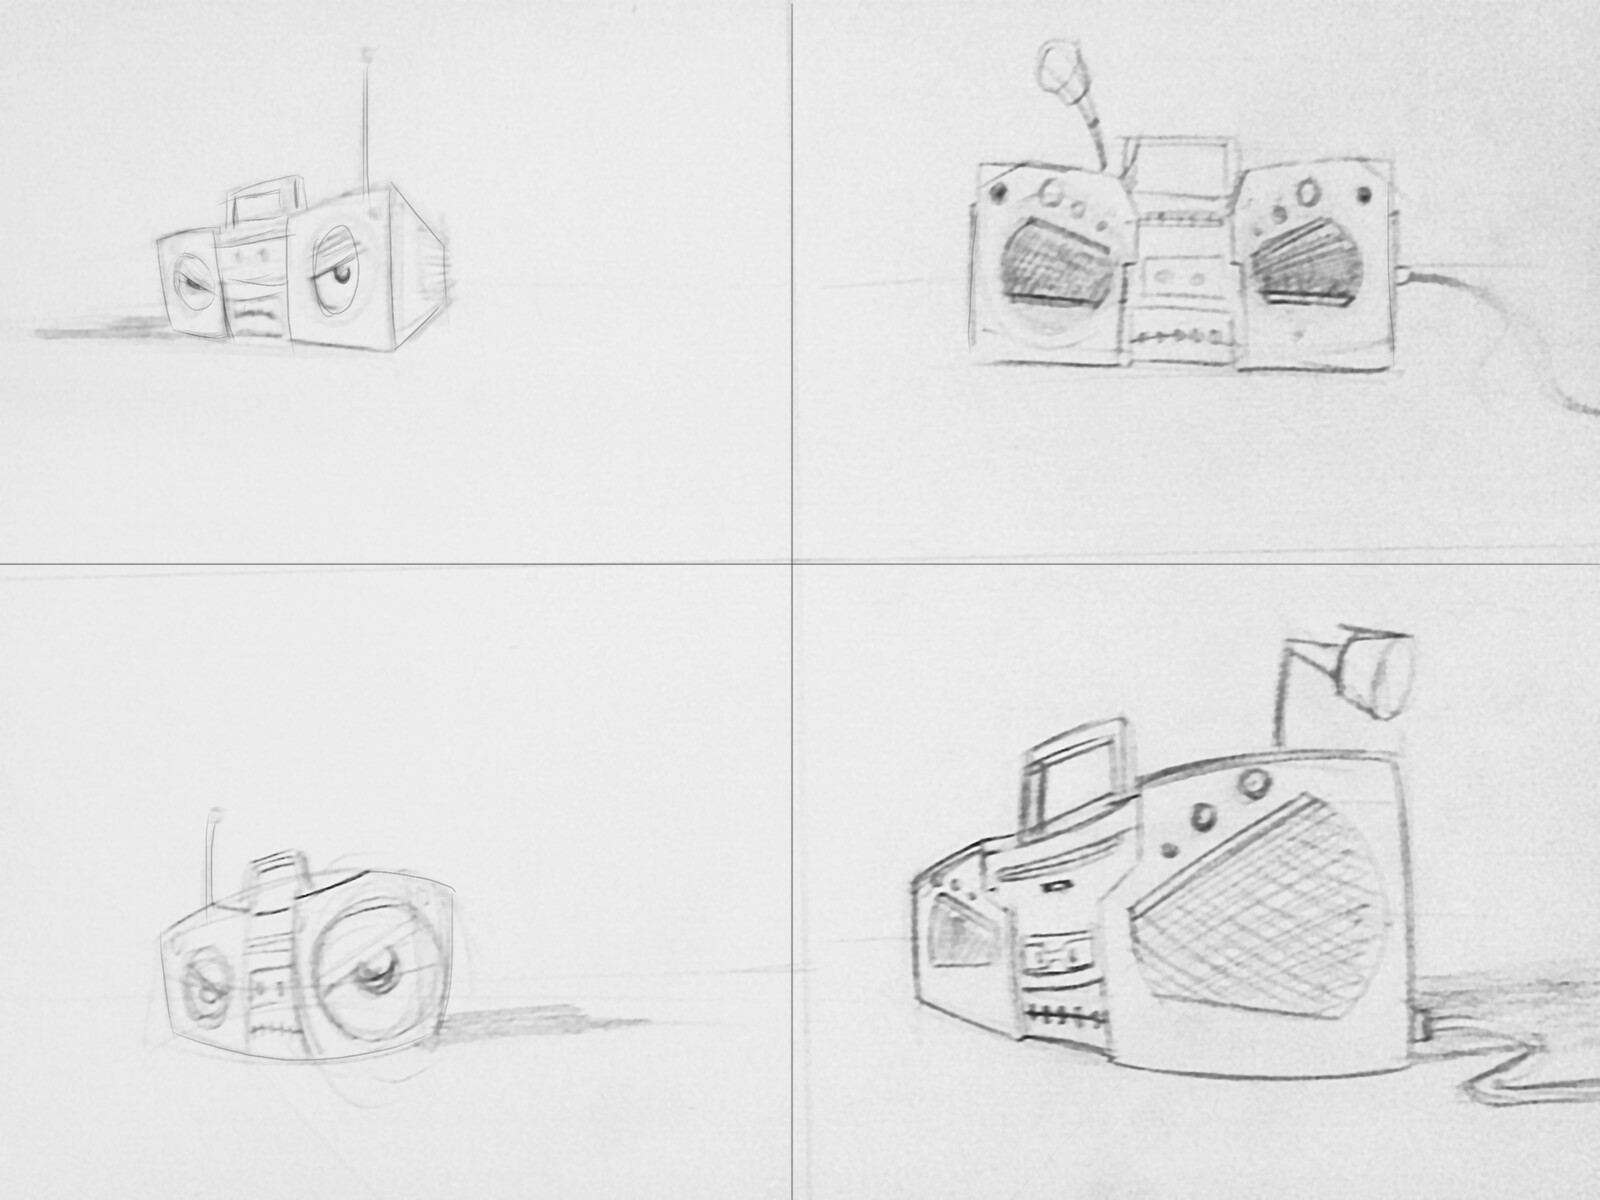 Angry Boombox Sketch